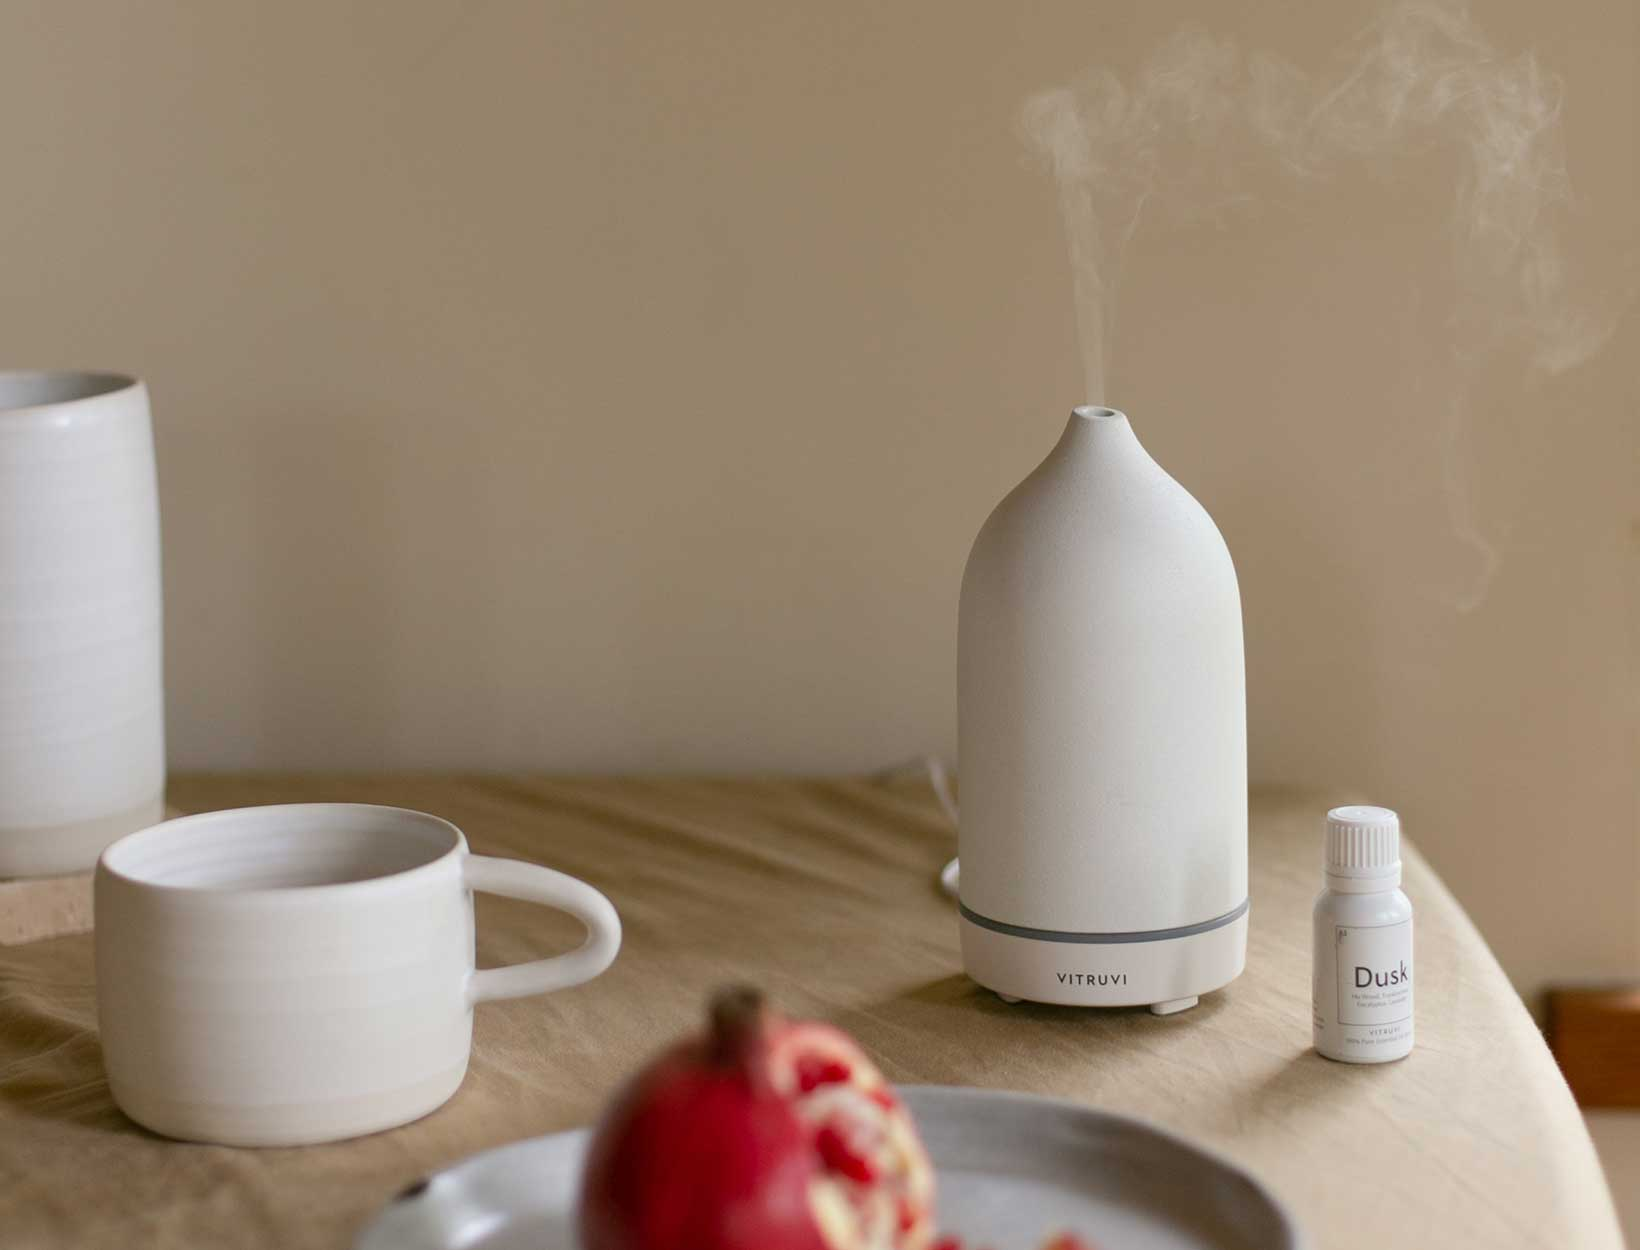 Ask Gerda: What's the Point of Diffusers  and Essential Oils?